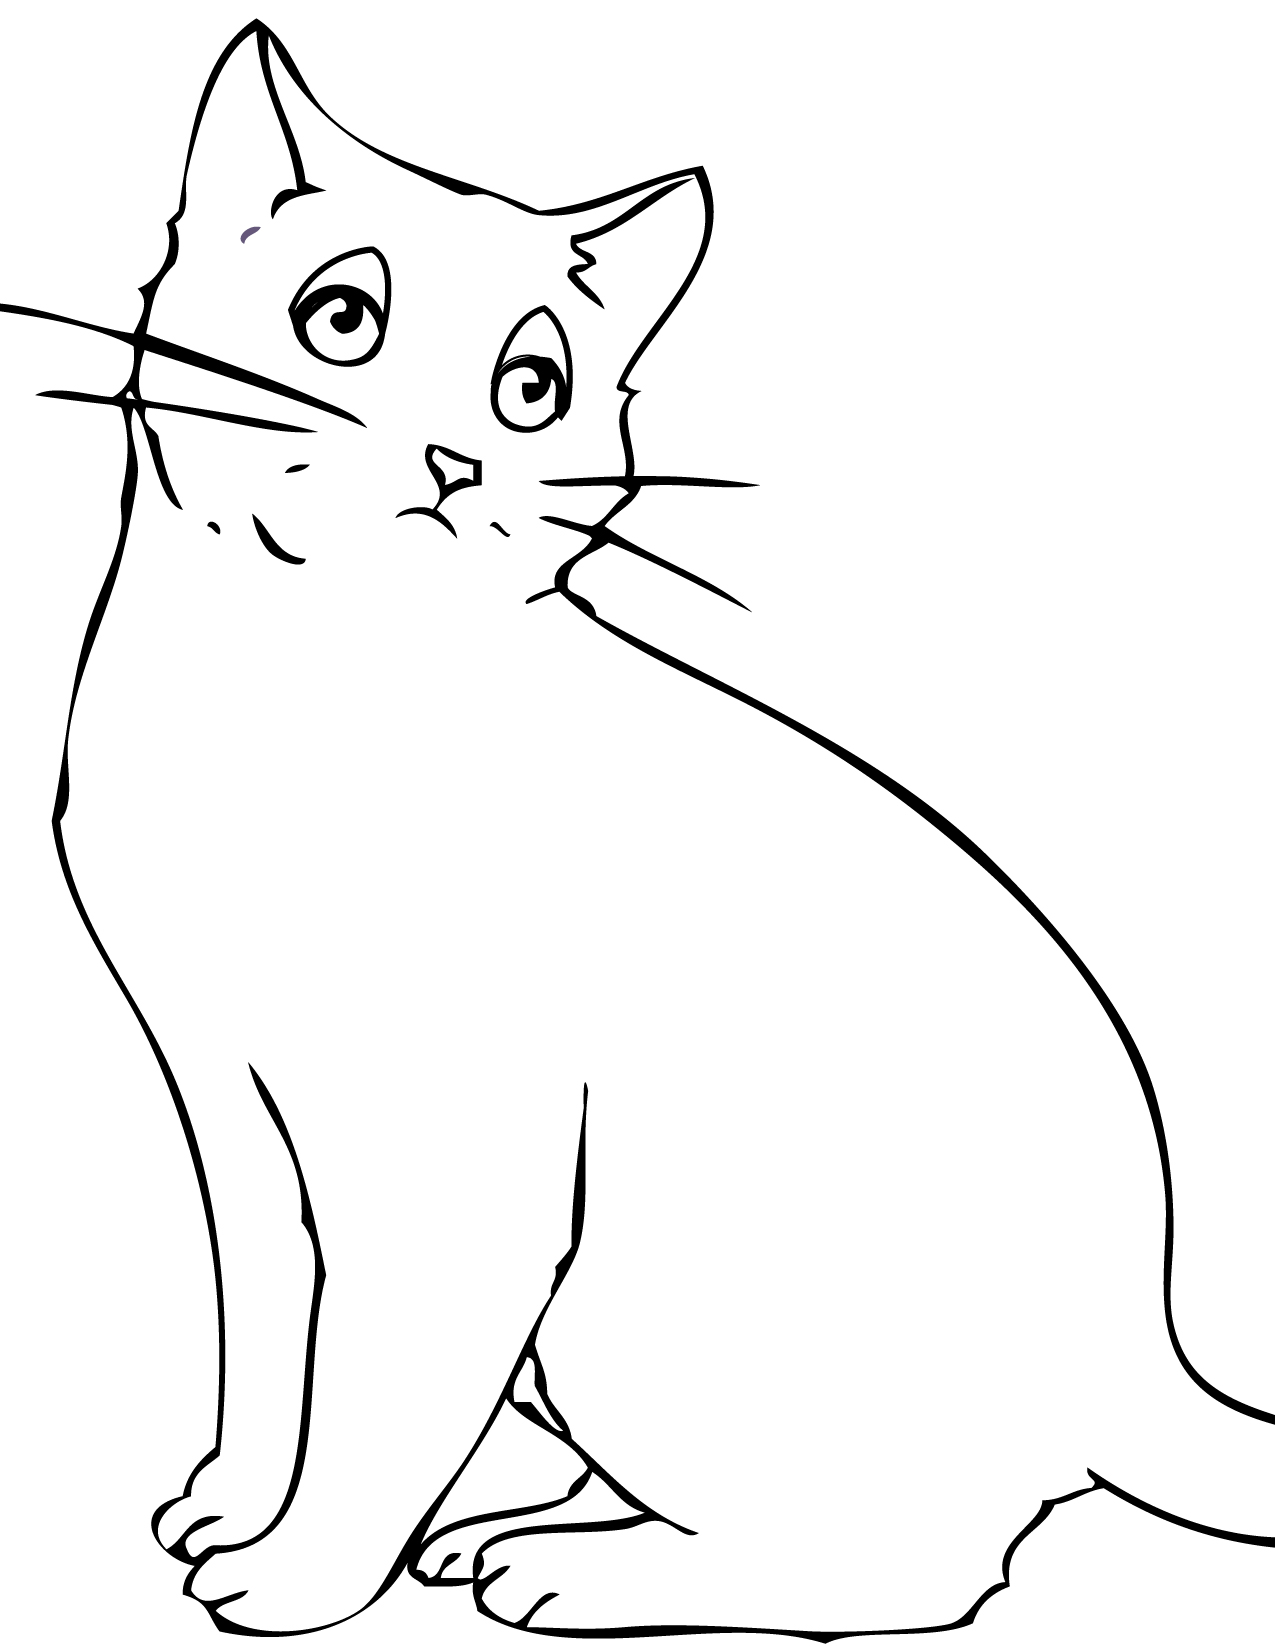 Free How To Create A Coloring Book Download Free Clip Art